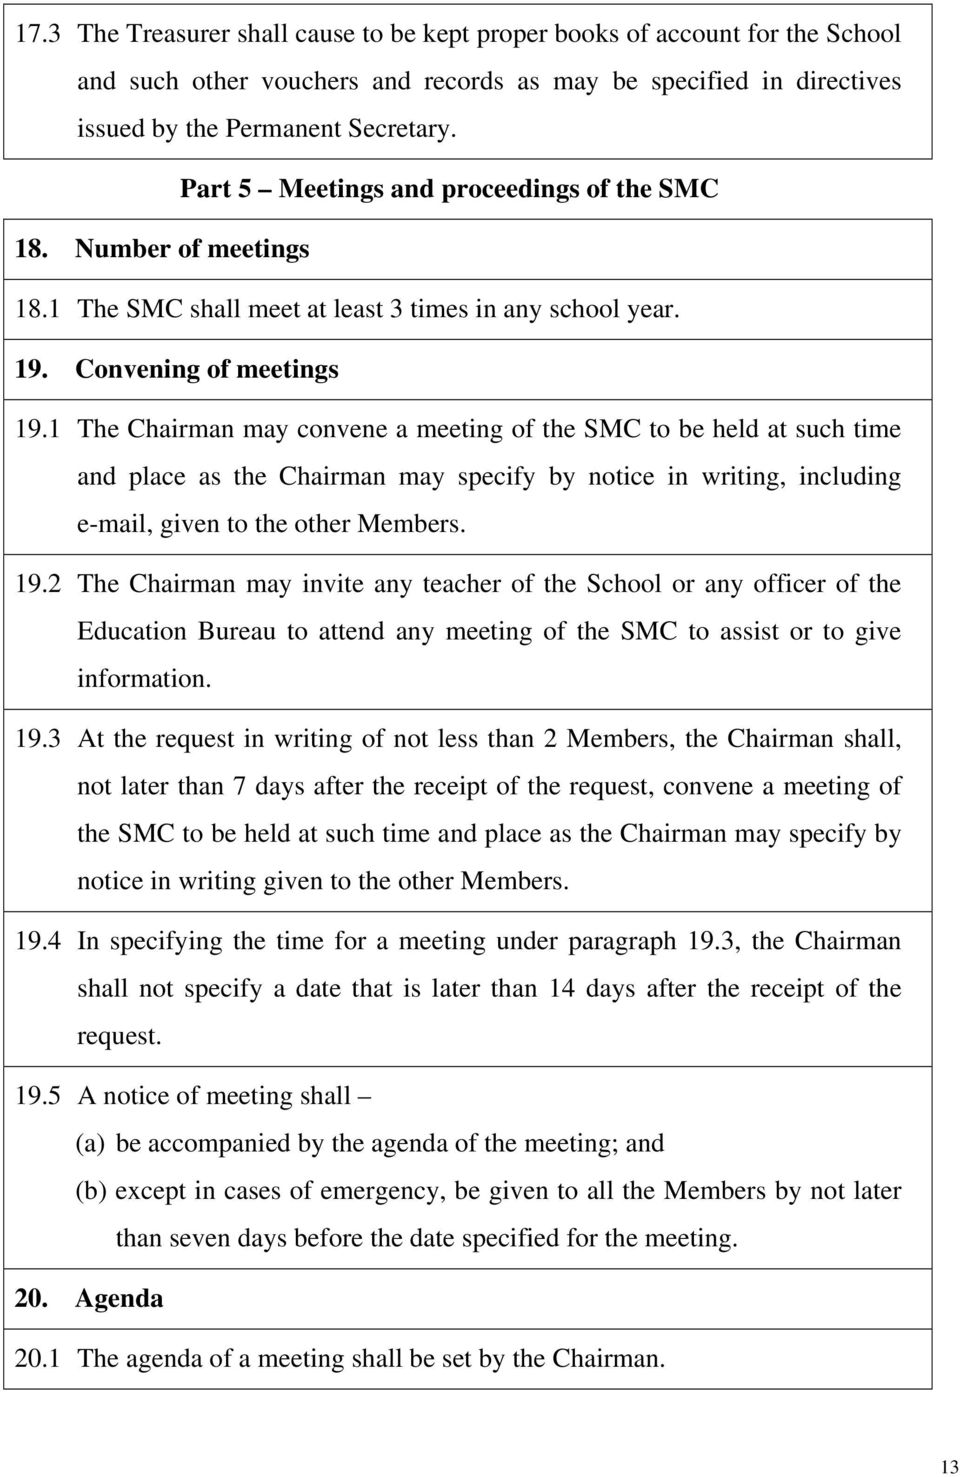 1 The Chairman may convene a meeting of the SMC to be held at such time and place as the Chairman may specify by notice in writing, including e-mail, given to the other Members. 19.